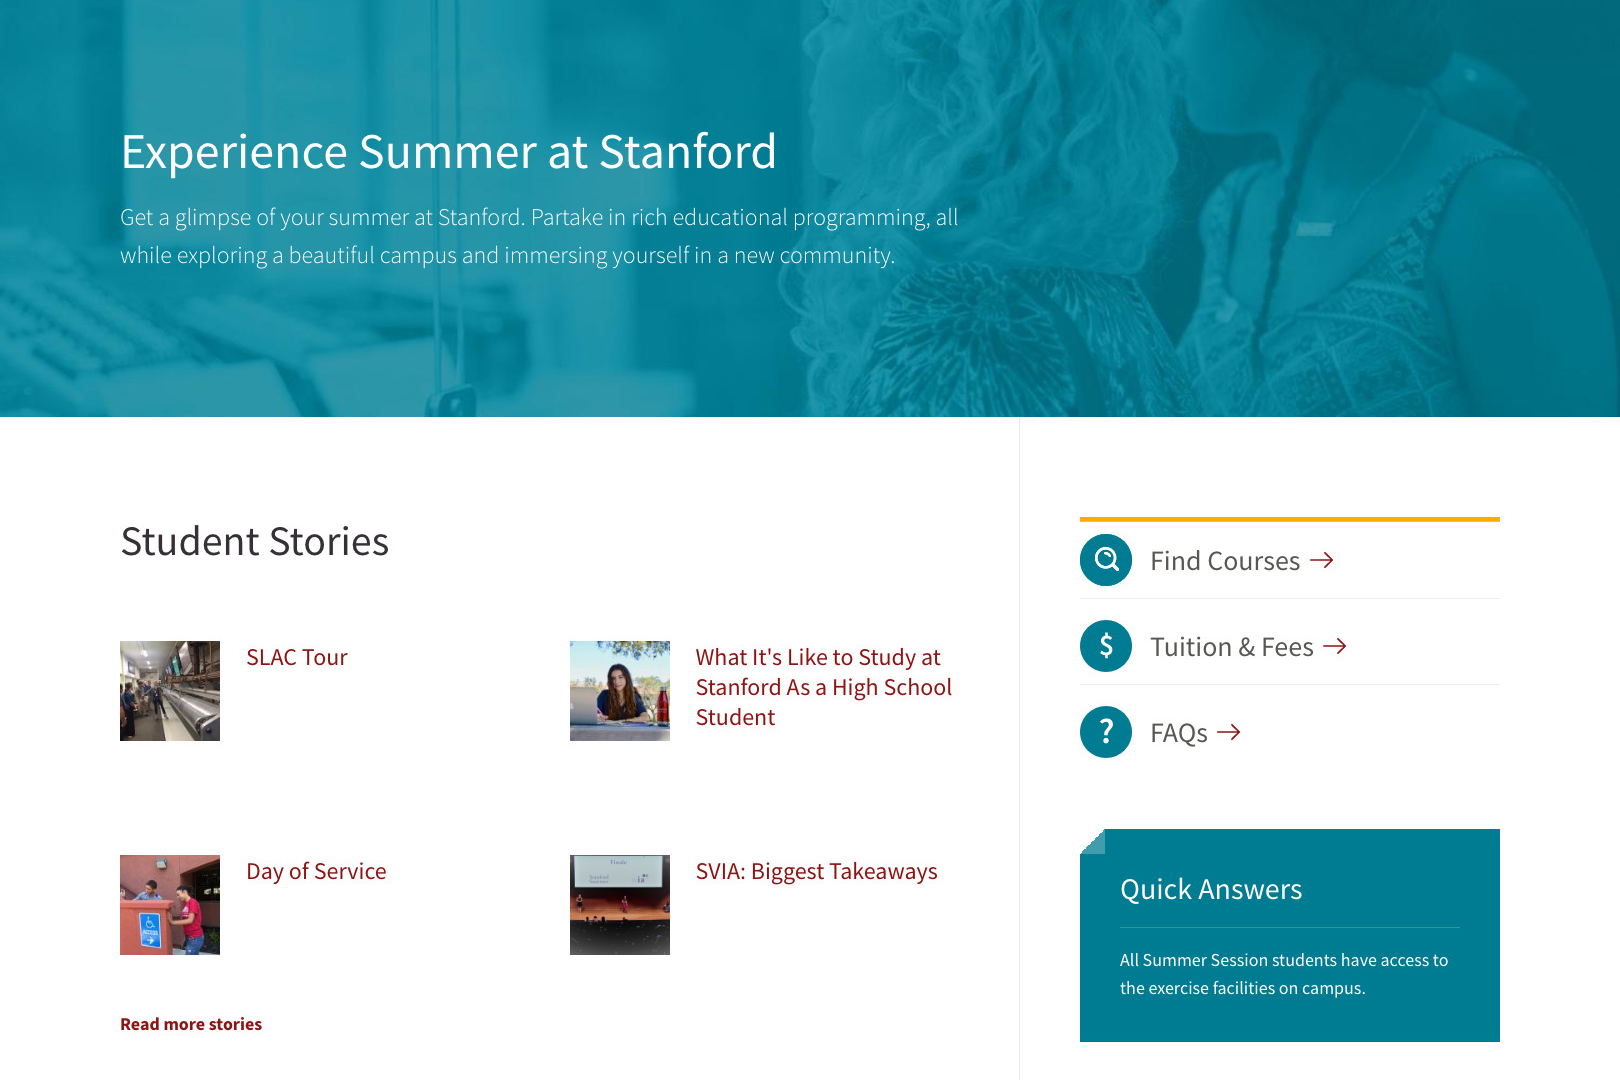 A screenshot of the Stanford Summer Session Student Life page